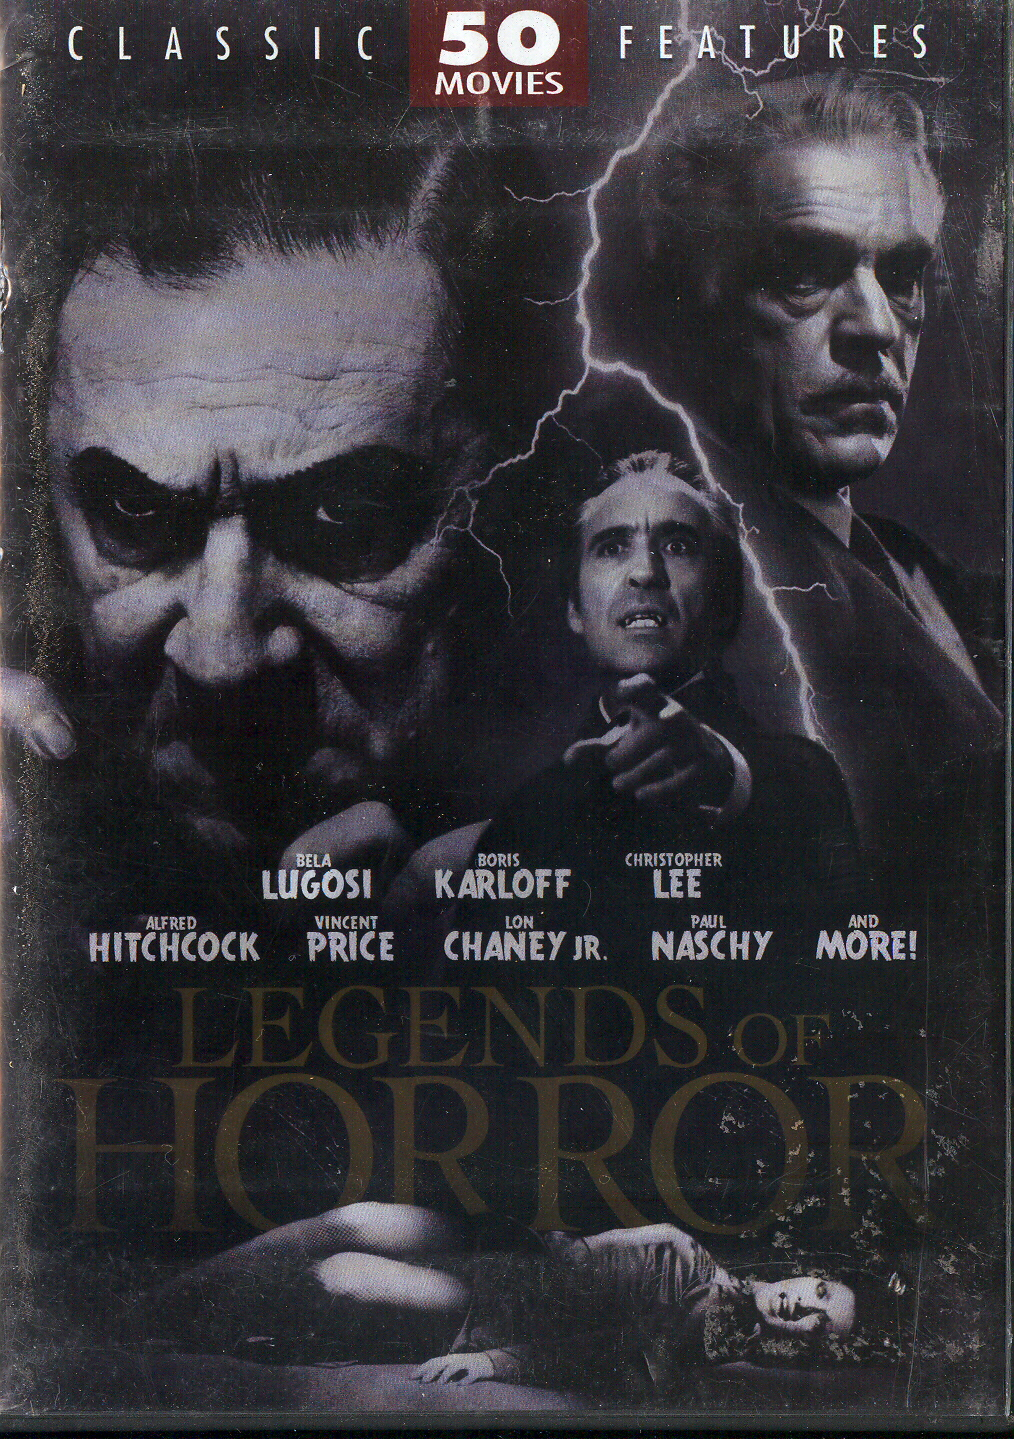 Legends of Horror